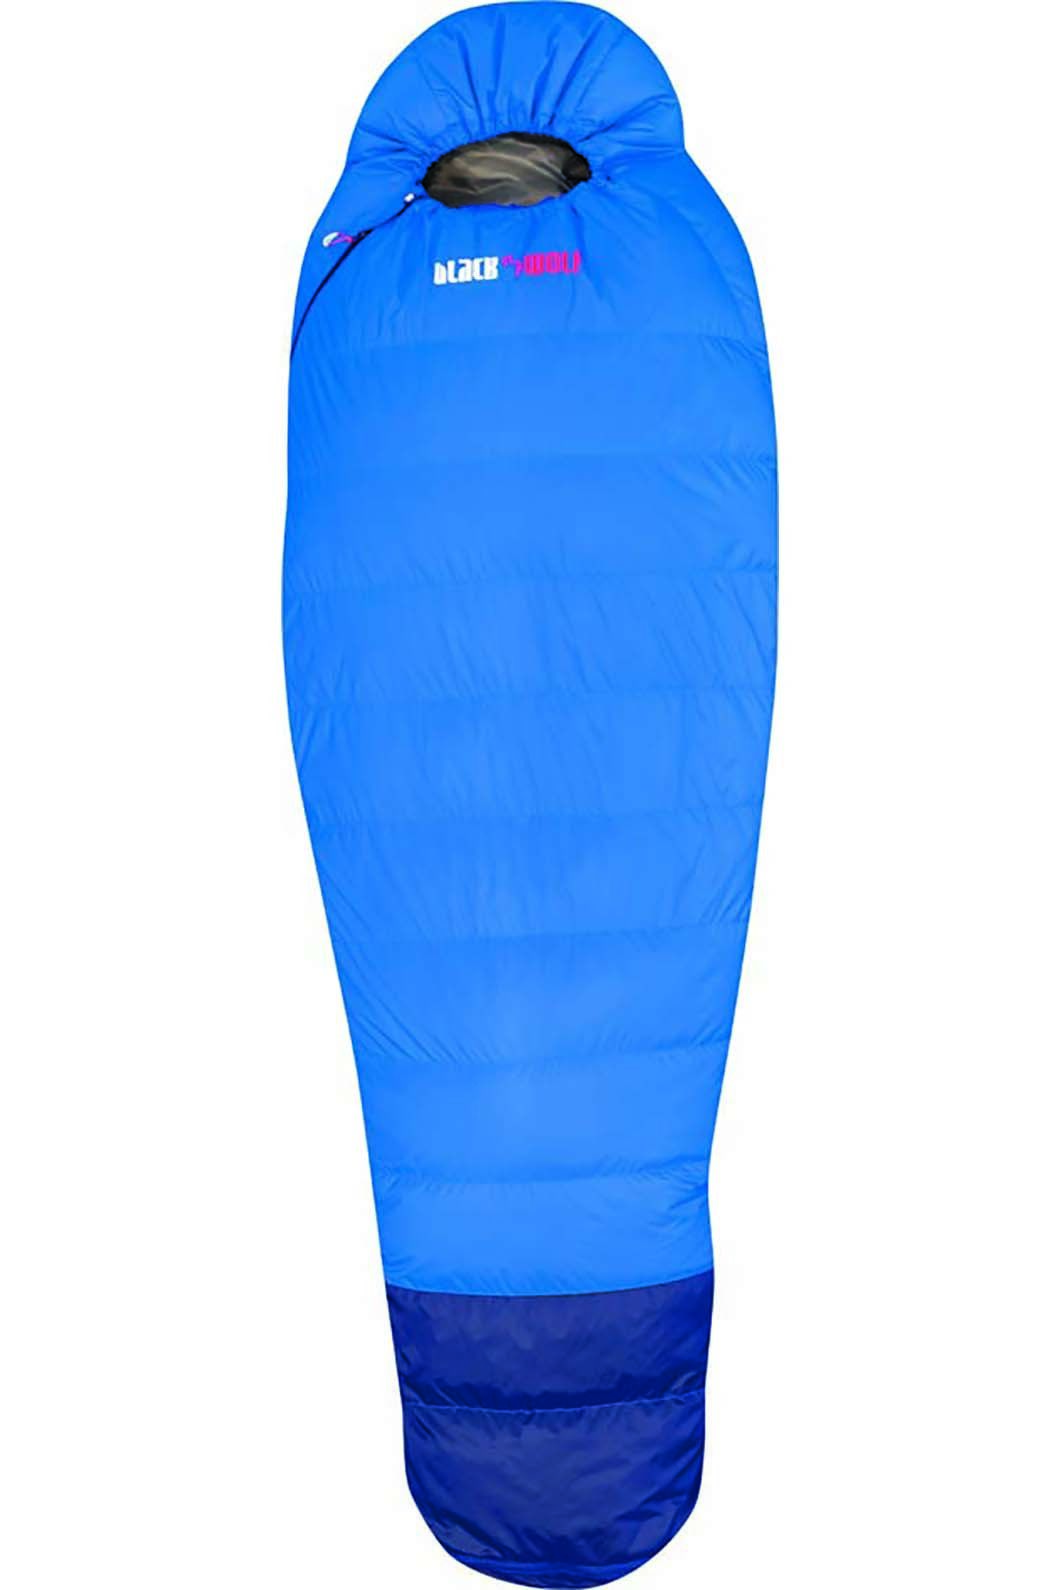 BlackWolf Hiker 500 Sleeping Bag, None, hi-res